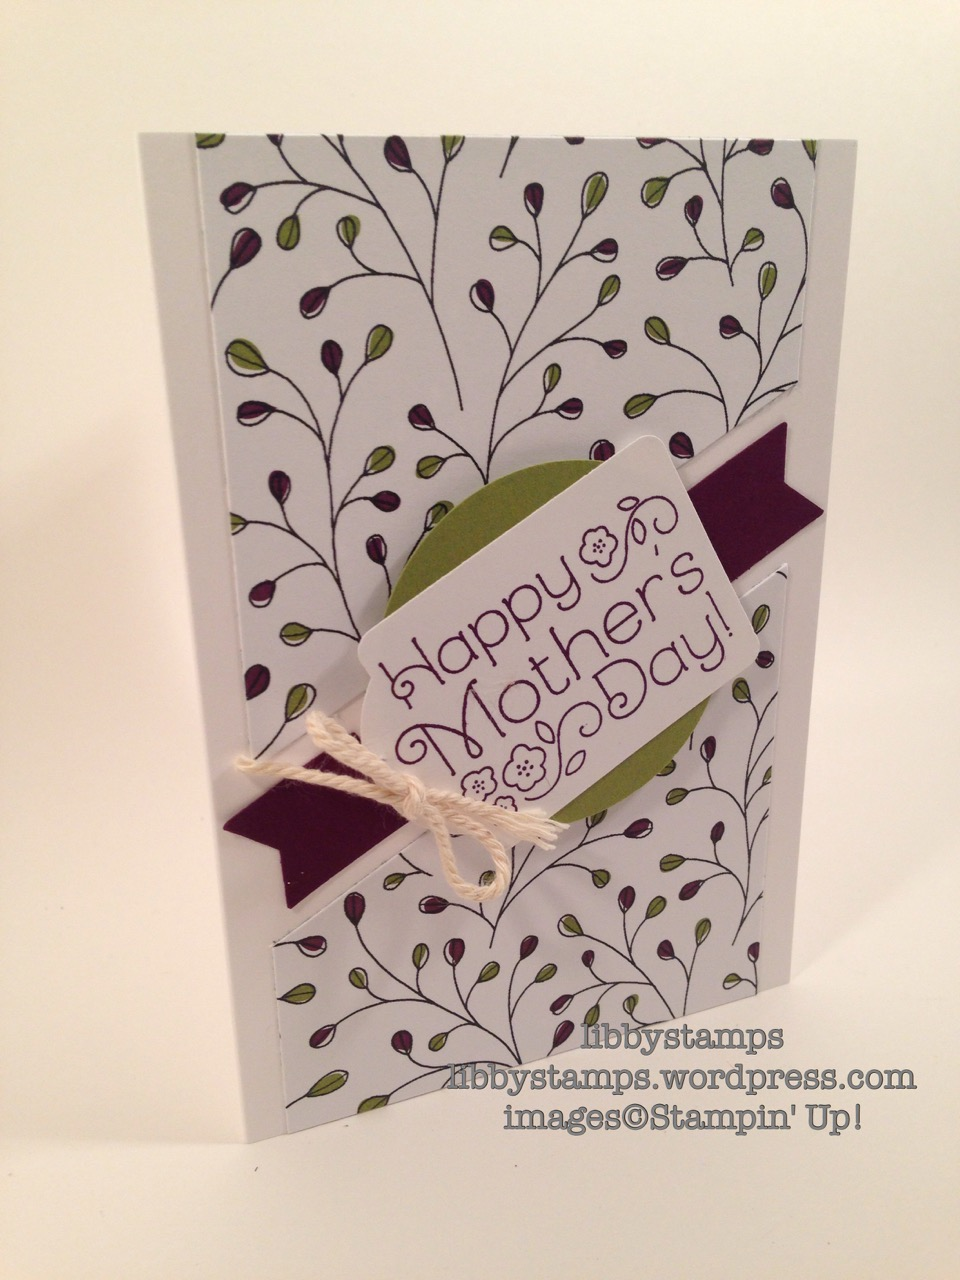 libbystamps, stampin up, Lovely Little Wreath, Wildflower Fields DSP, Sale-a-Bration 2016, Note tag Punch, Mother's Day